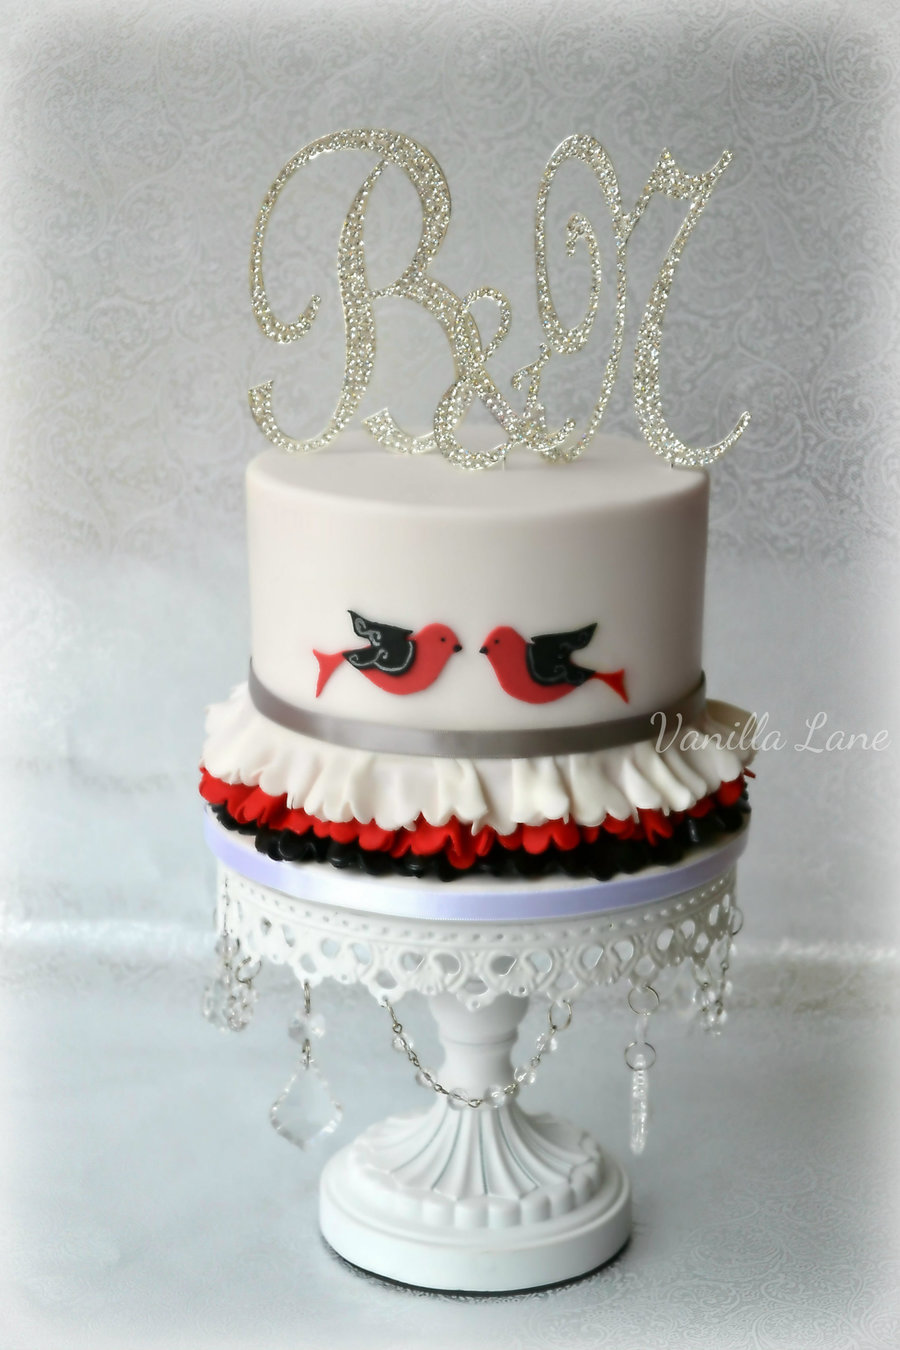 white chocolate ganache covered wedding cake lovebirds wedding cake 6 top cake was velvet covered 27250